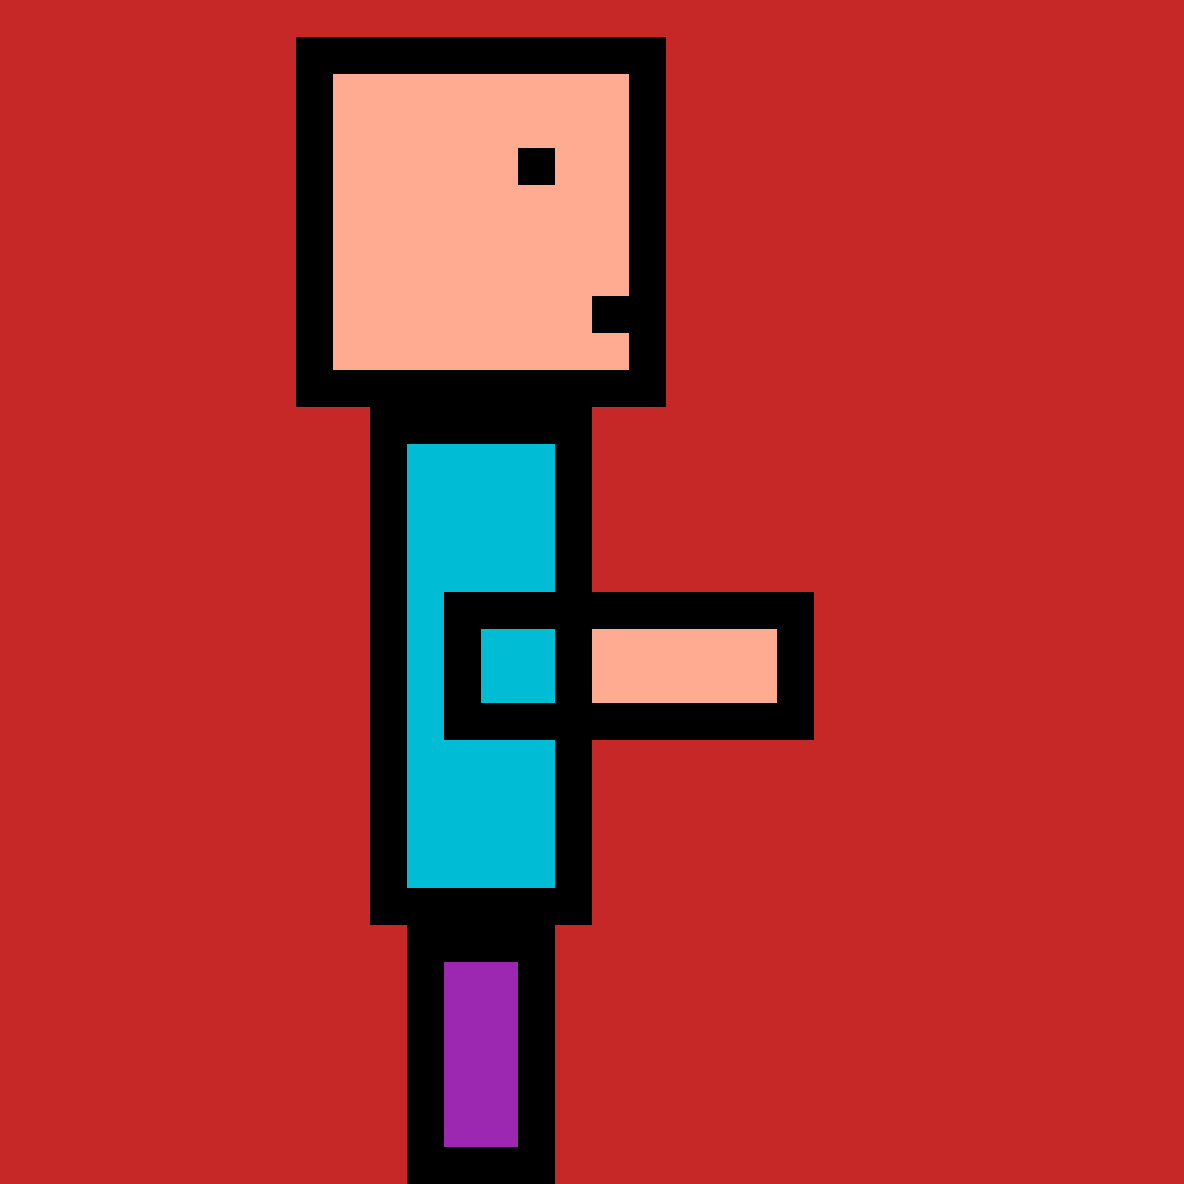 Mine craft steve by Tant44